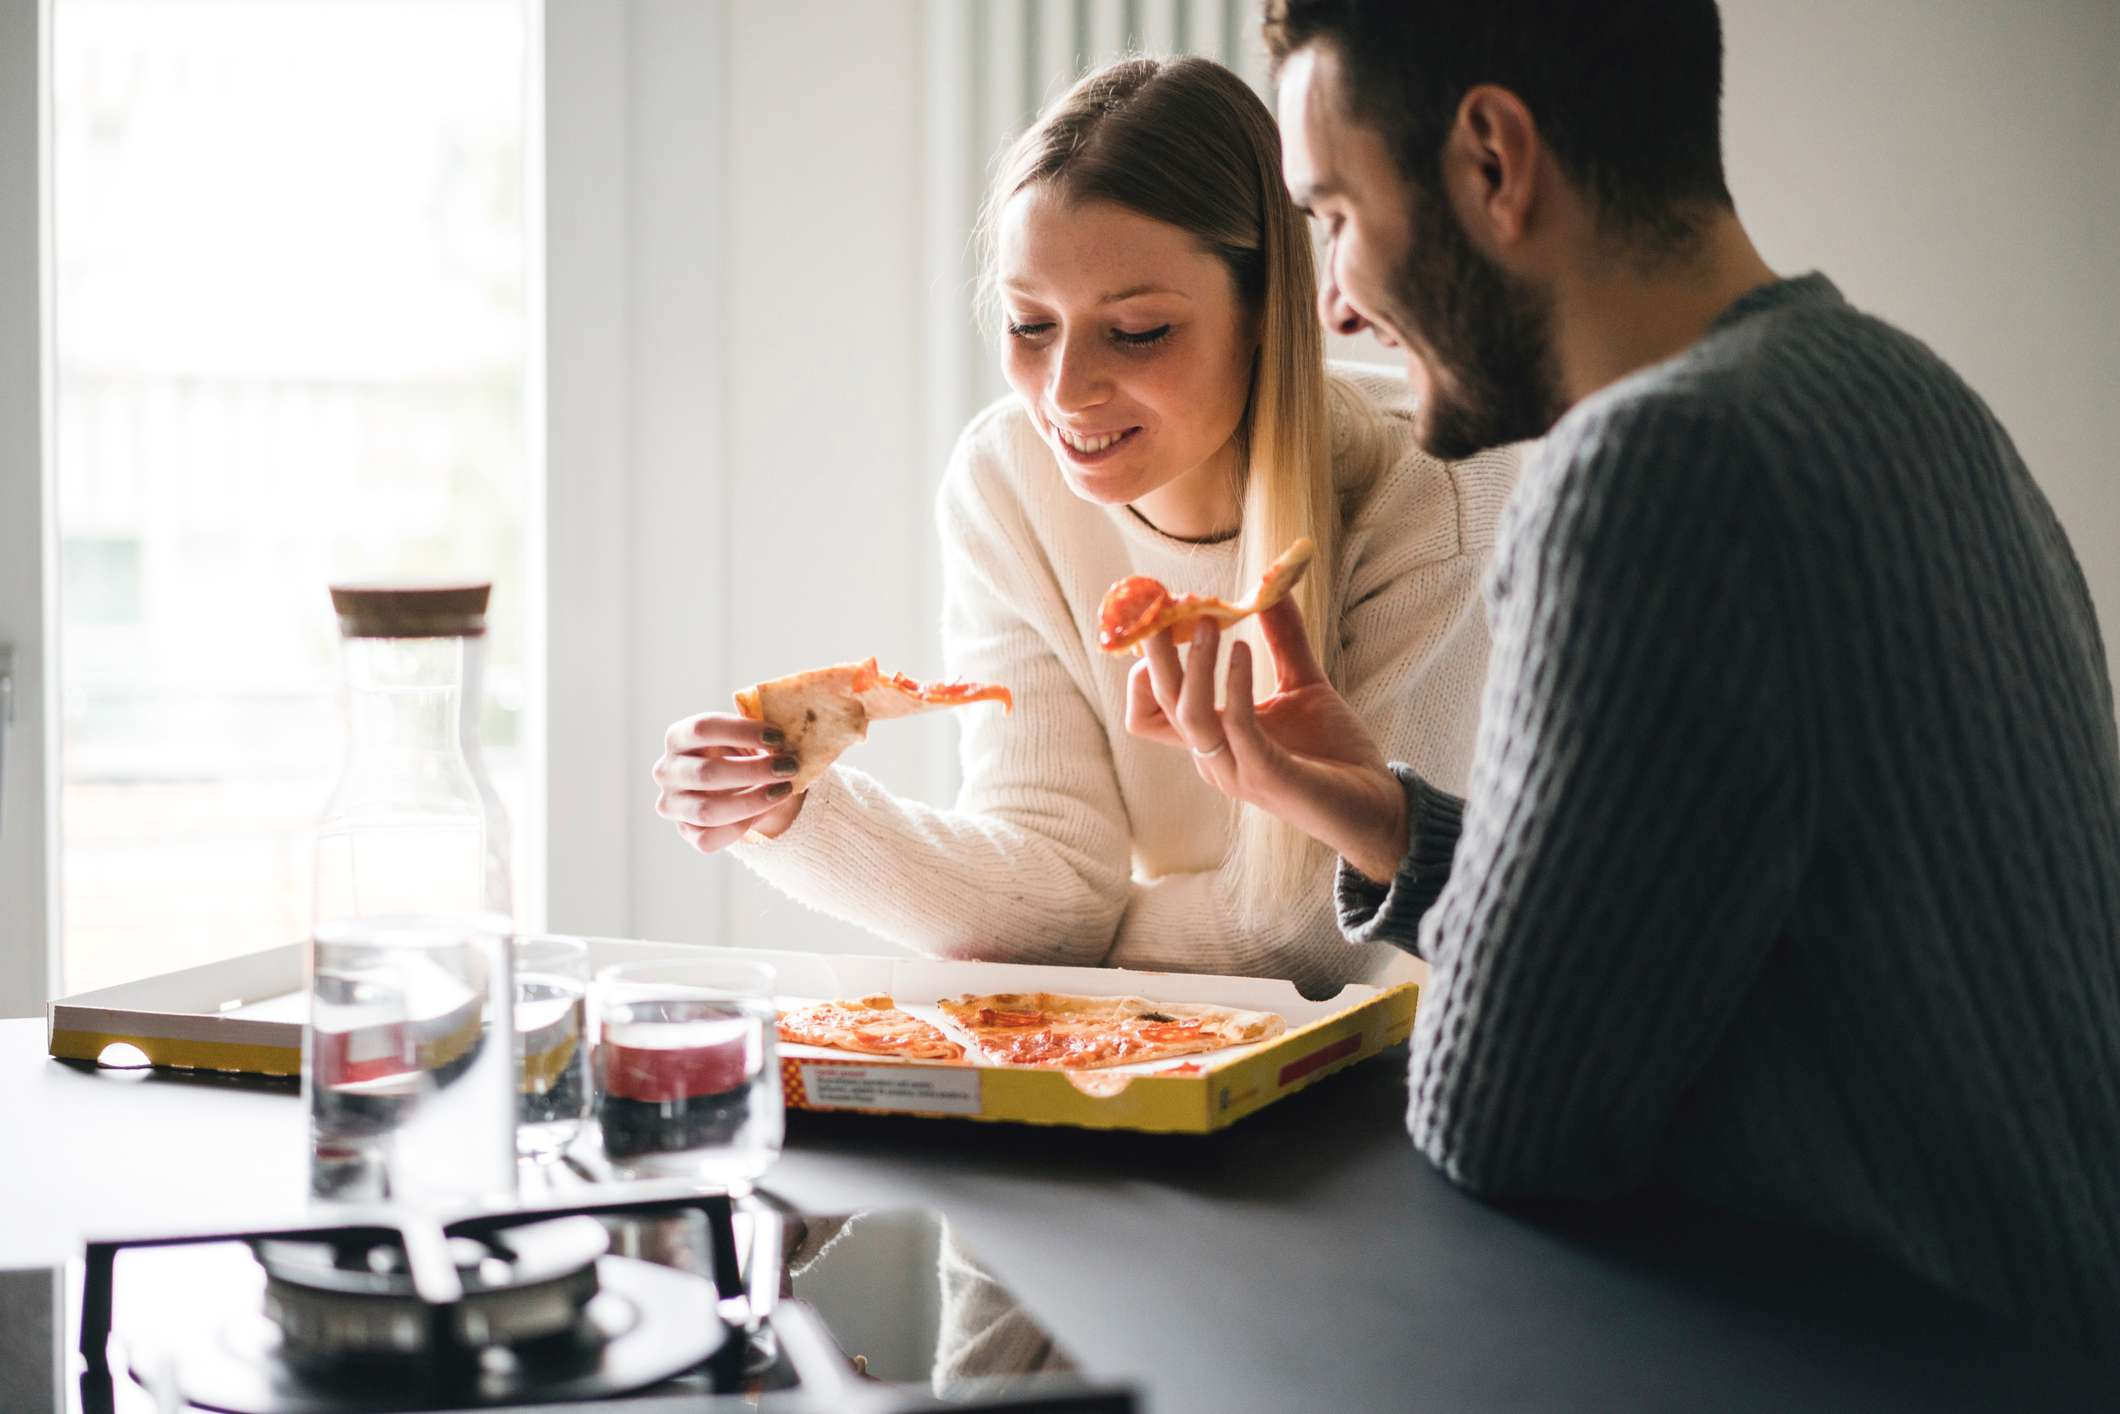 A couple eating pizza in the kitchen.